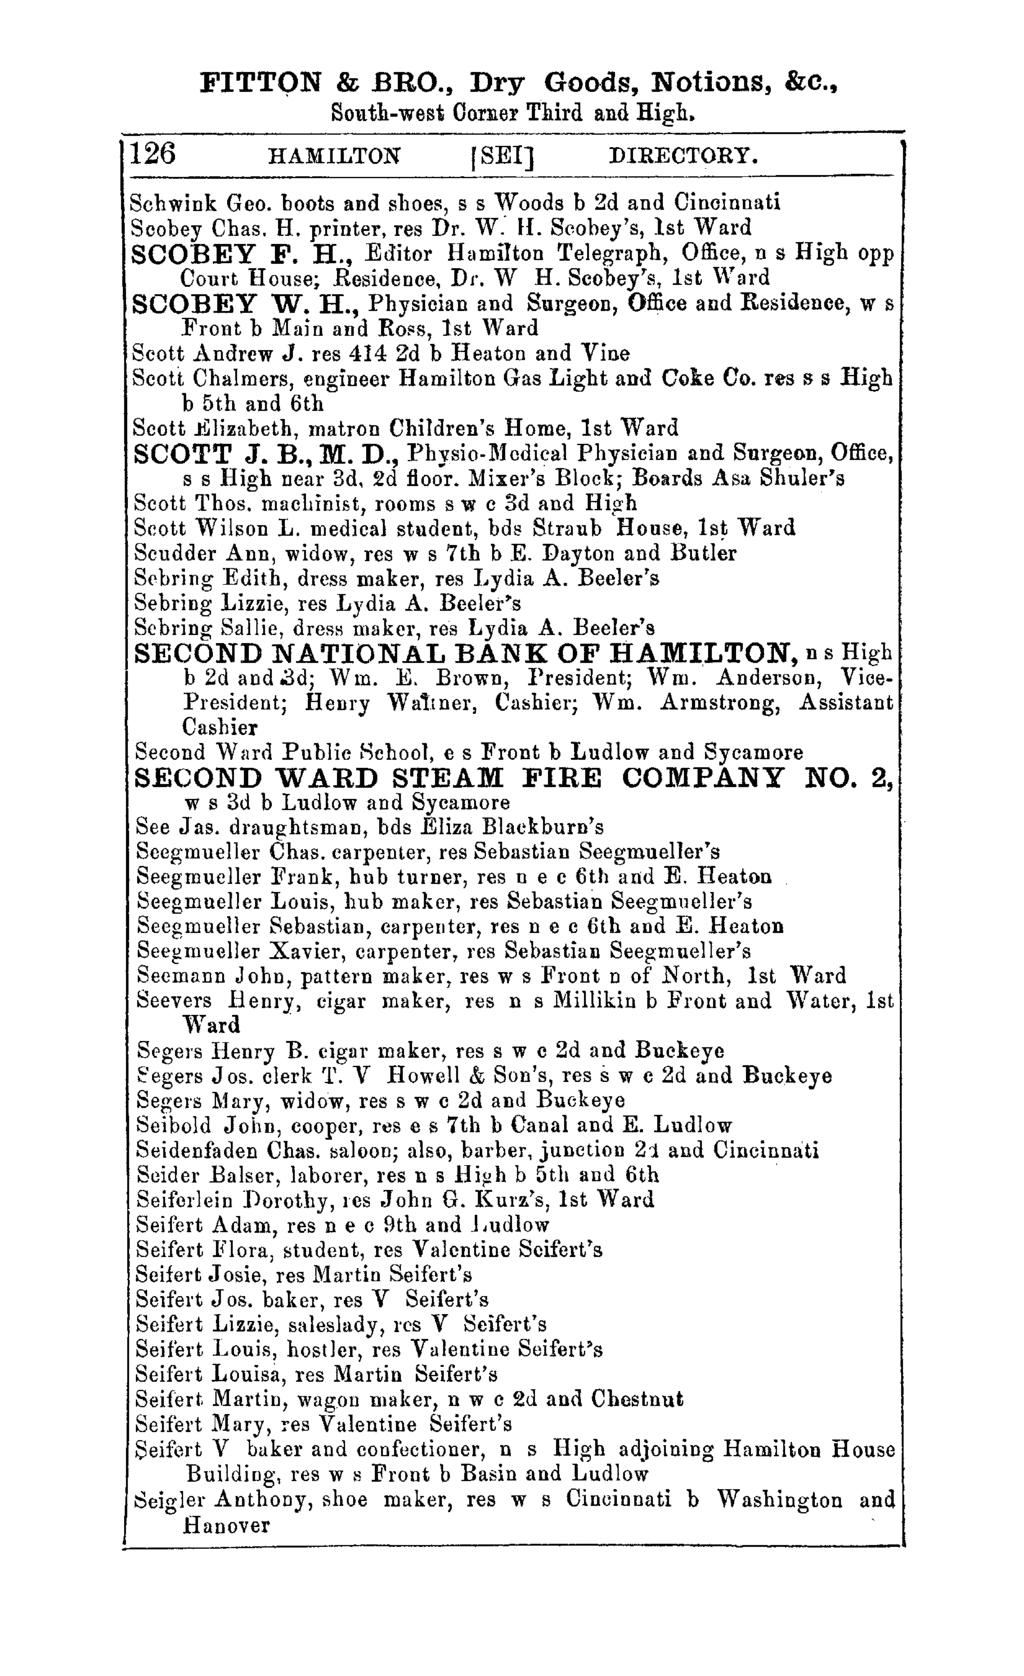 FITTON &.BRO., Dry Goods, Notions, &0., South-west Corner Third and High. 126 HAMILTON rsel] DIRECTORY. Schwink Geo. boots and shoes, s s Woods b 2d and Cincinnati Scobey Chas. H. printer, res Dr.